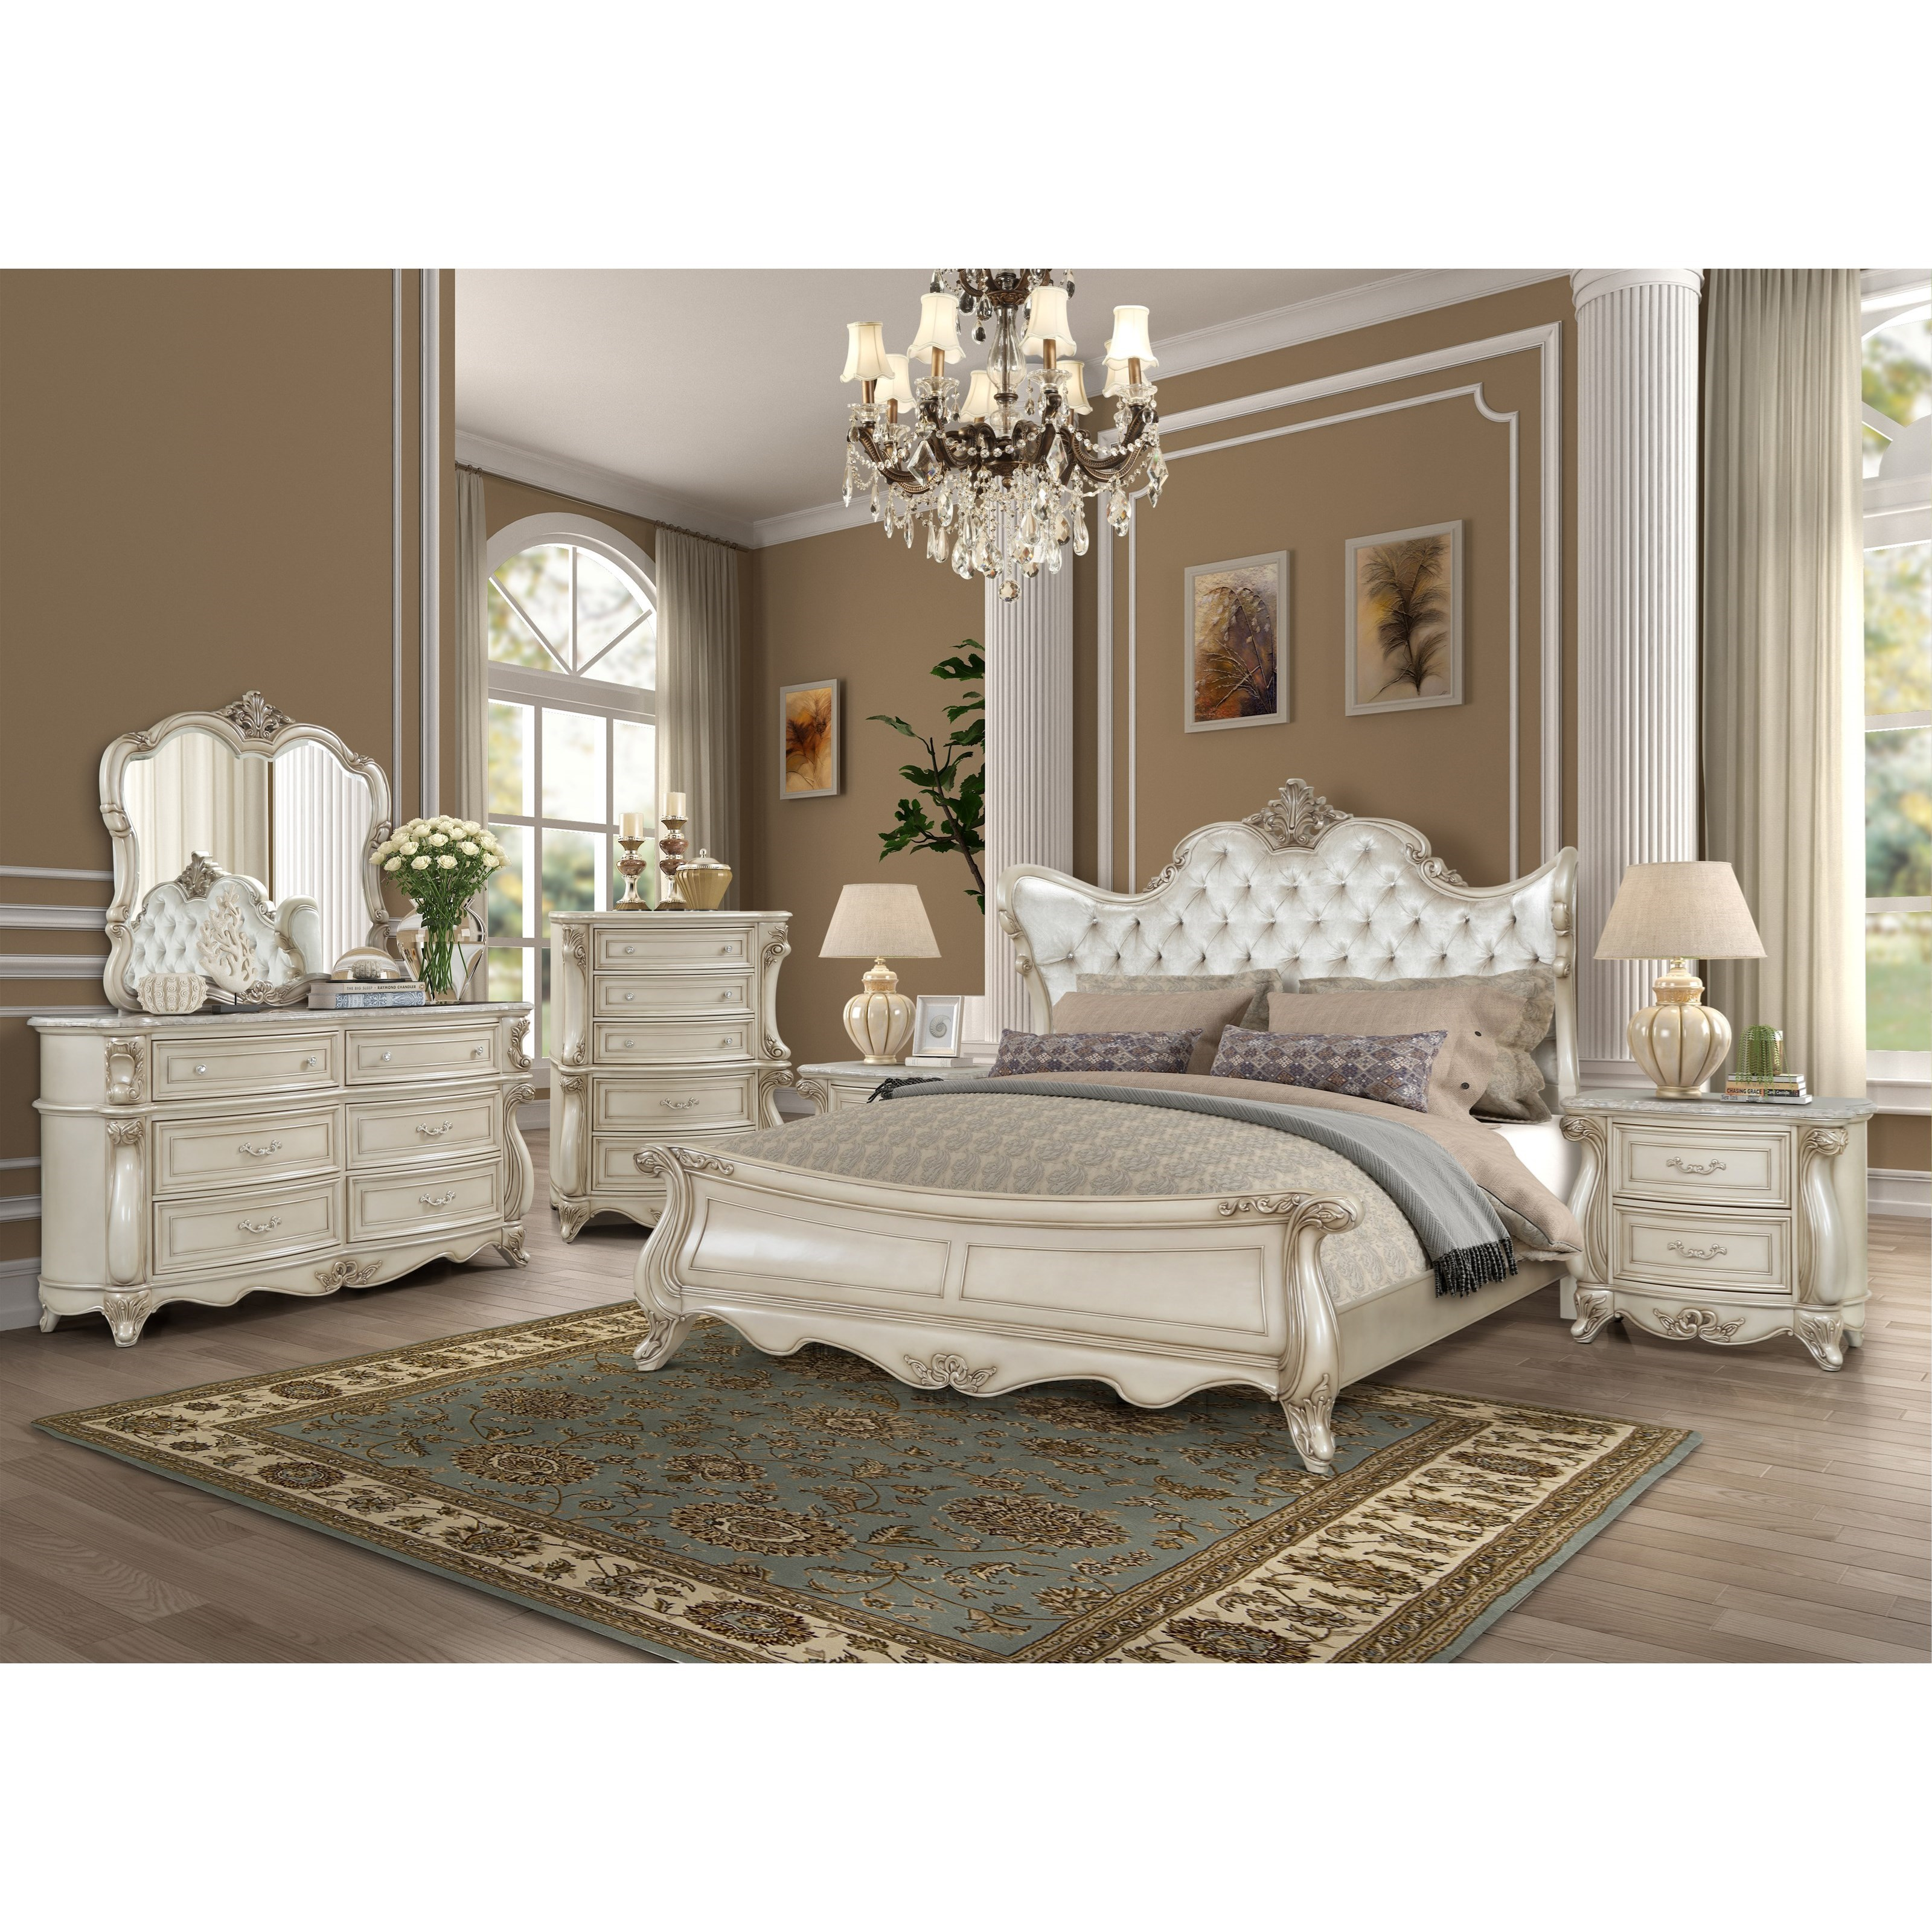 Monique King Bedroom Group by New Classic at Rife's Home Furniture